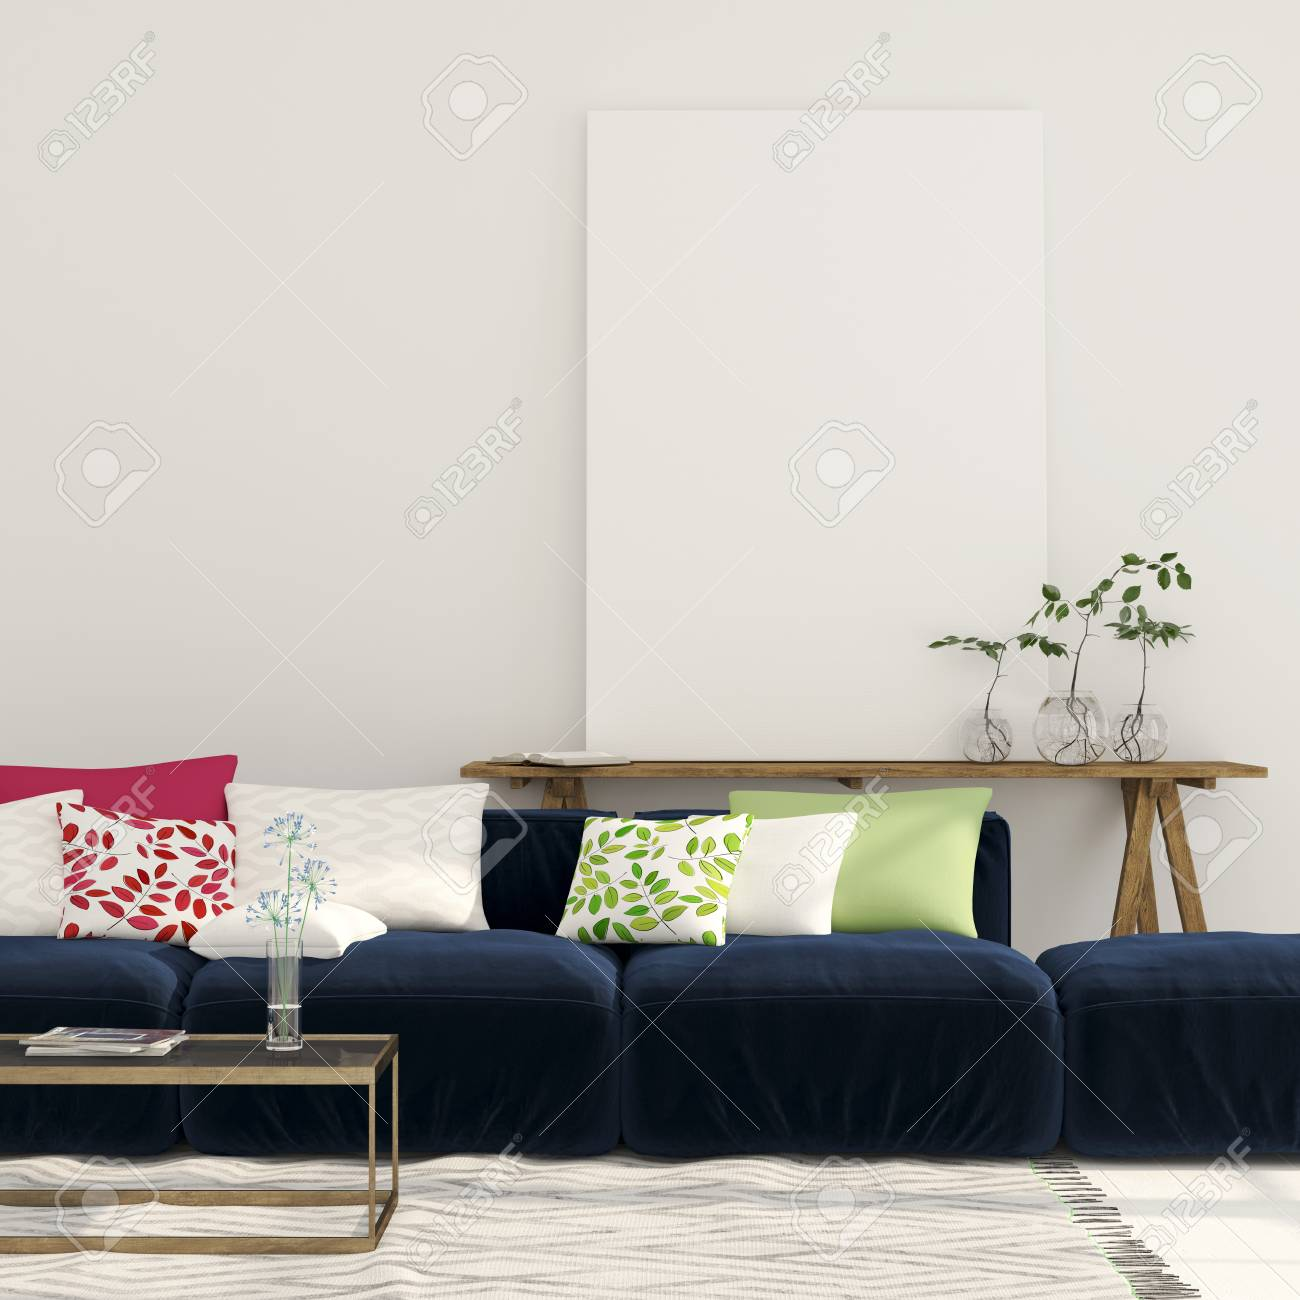 Wide Blue Sofa With Colorful Pillows And A Wooden Console With ...